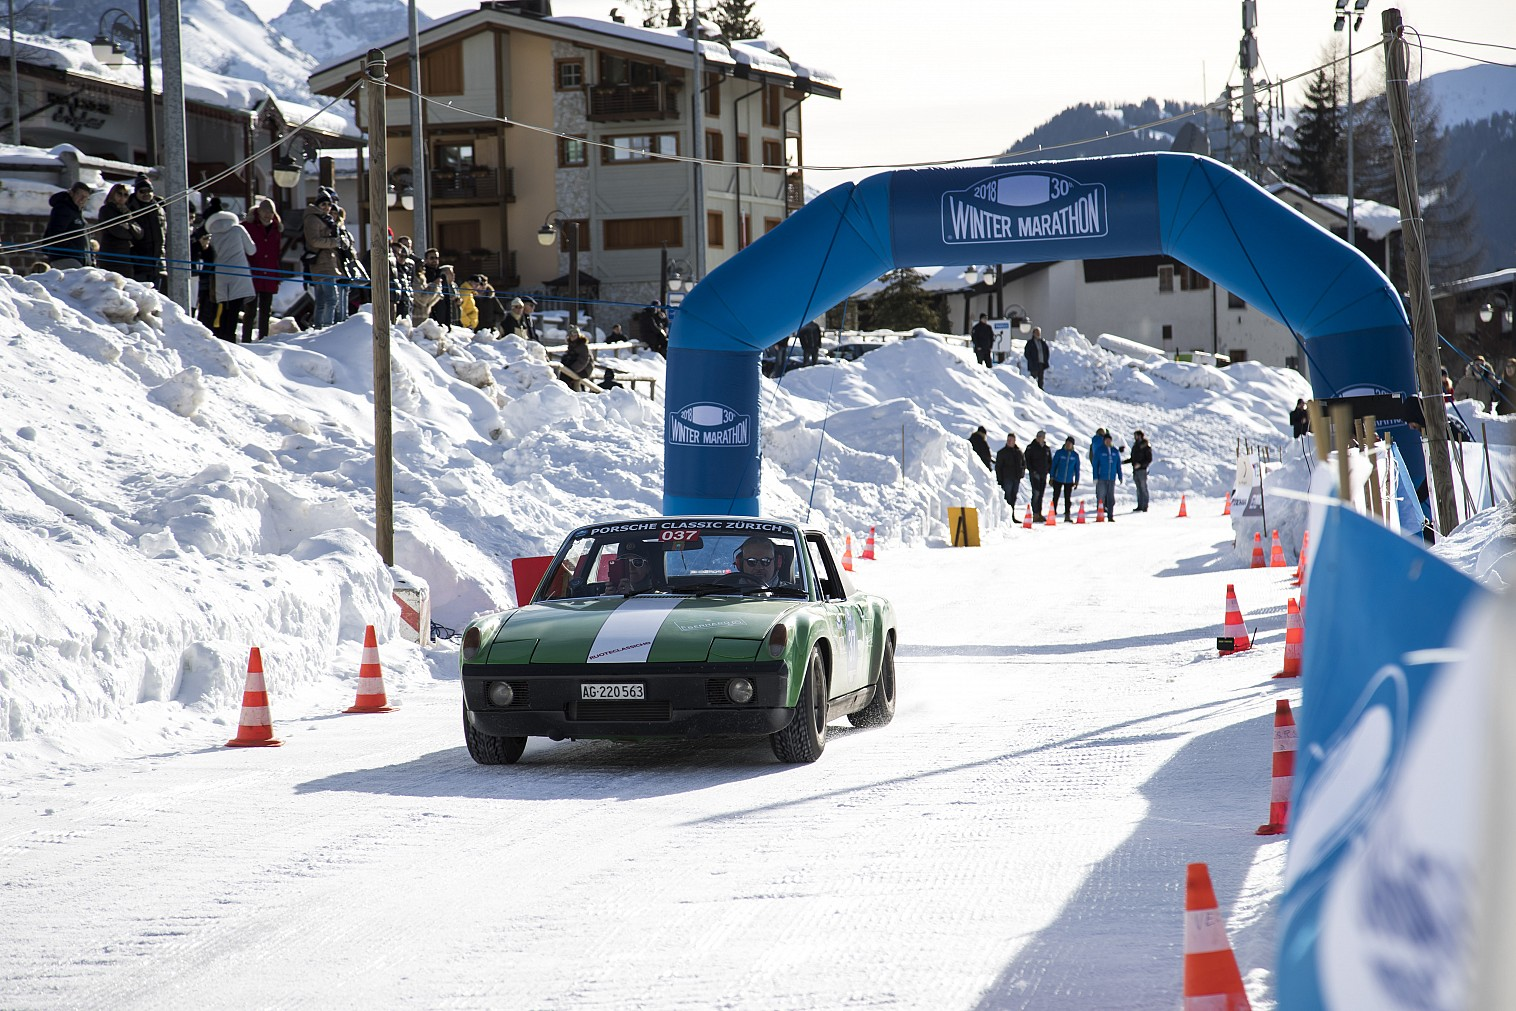 #WinterMarathon2019, from 24 to 27 January in Madonna di Campiglio the 31st edition